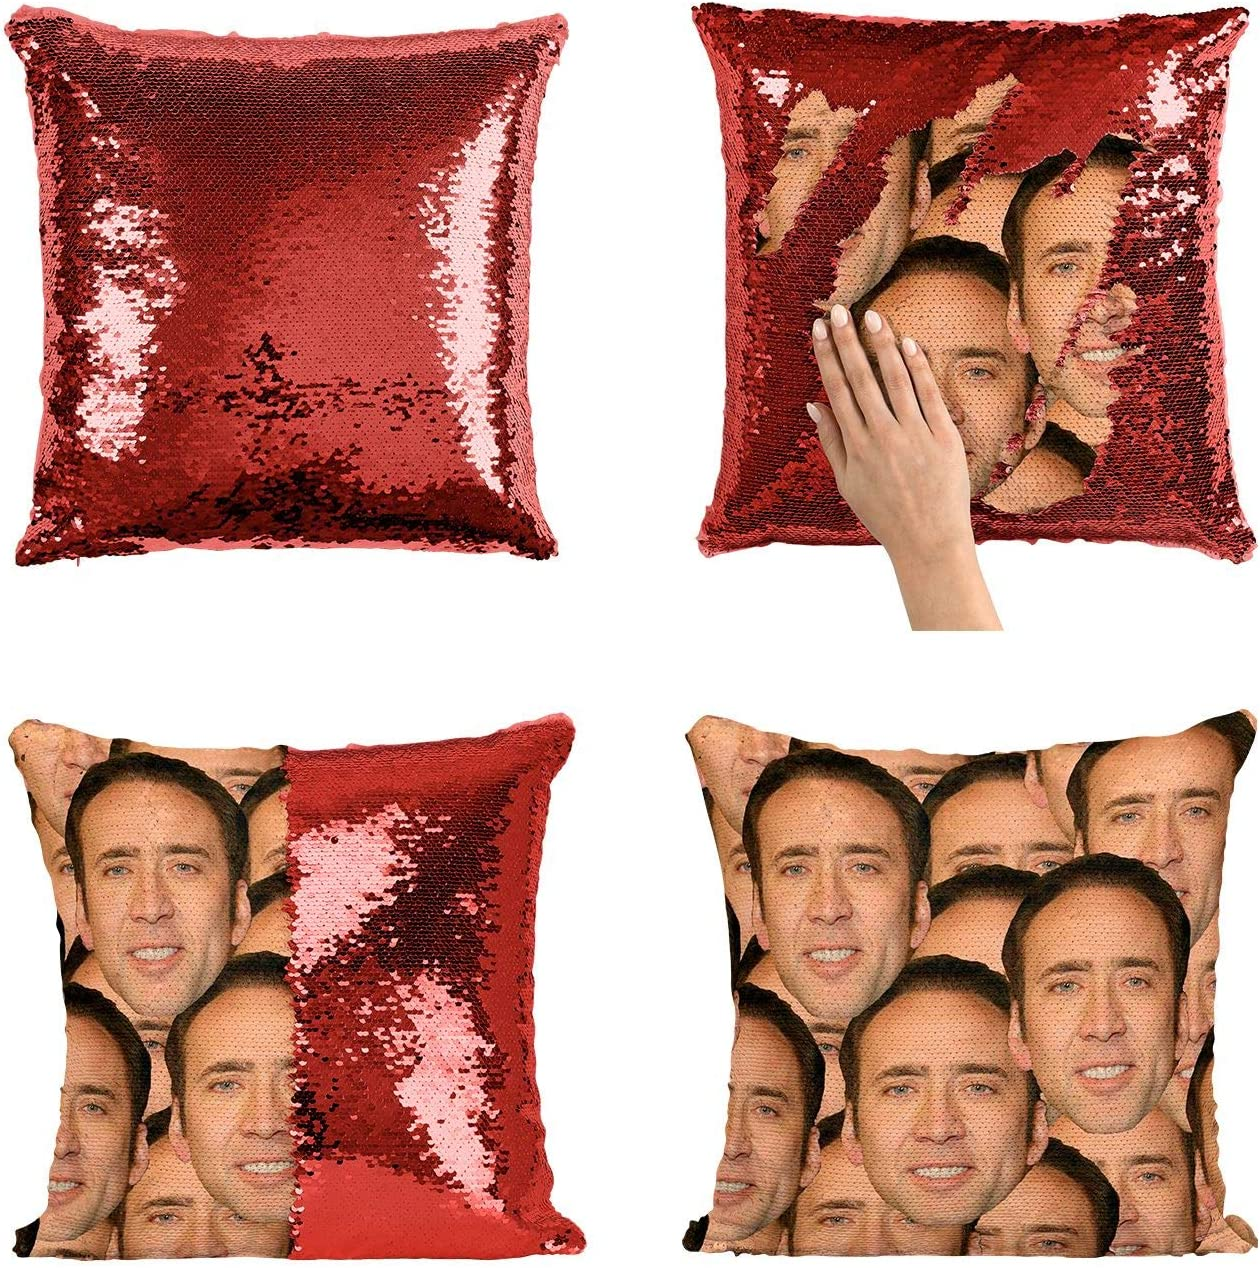 Nicolas Cage Mashup Faces Meme_P004 Sequin pillow, Sequin Pillowcase, Two color pillow, Fift for her, Gift for him, Magic Pillow, Mermaid Pillow, Scales Pillow Cover